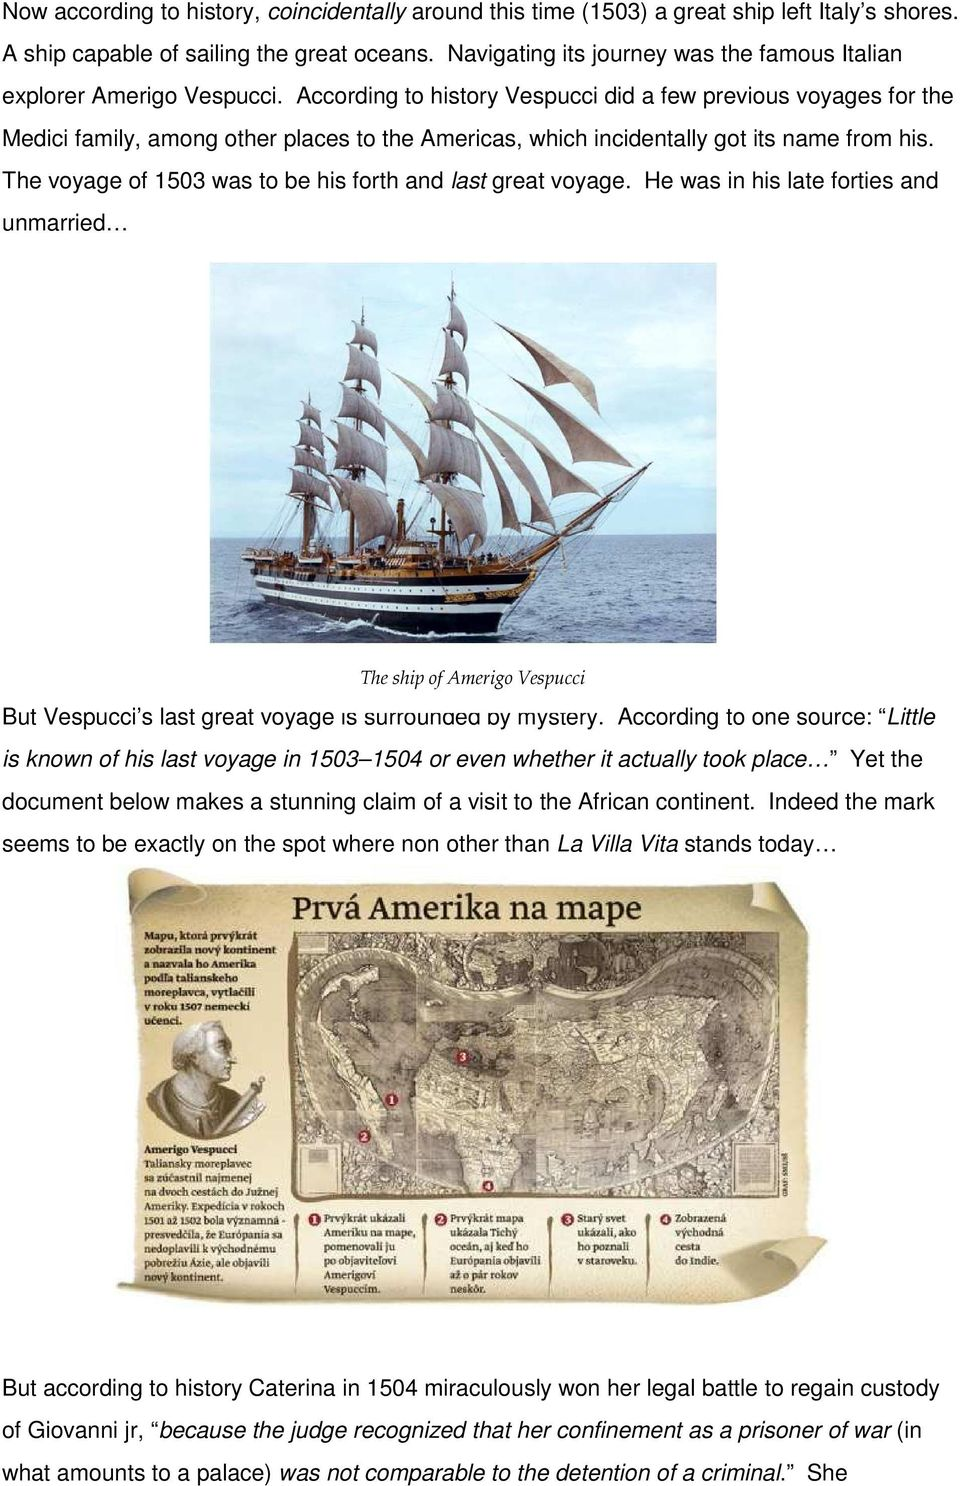 According to history Vespucci did a few previous voyages for the Medici family, among other places to the Americas, which incidentally got its name from his.